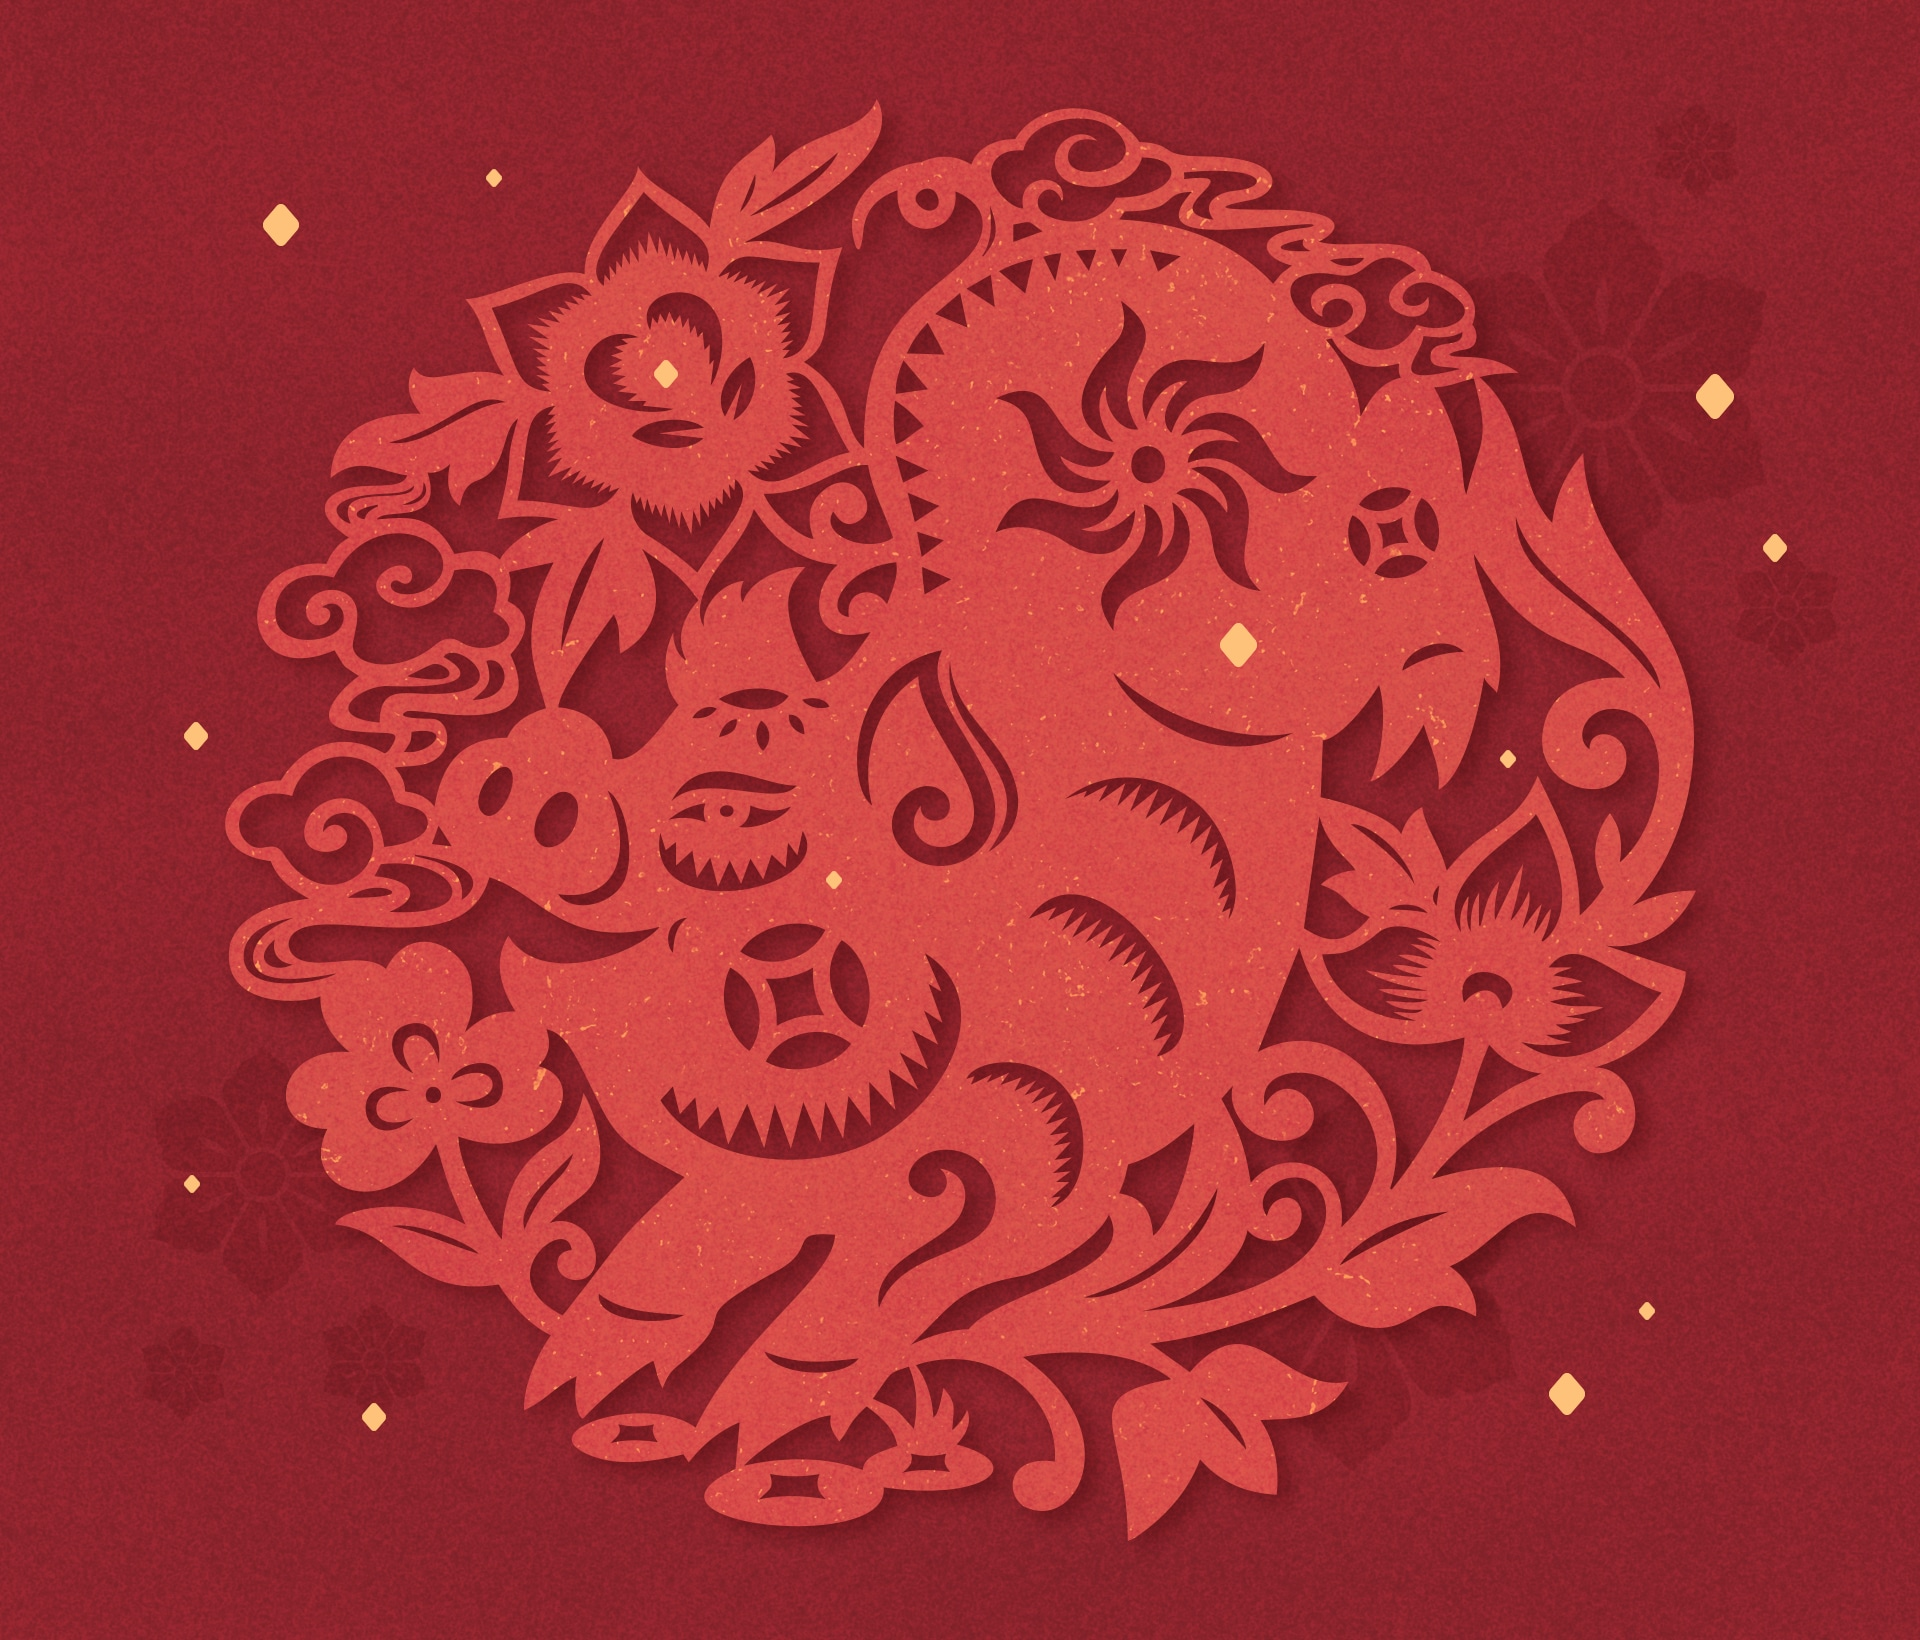 Chinese New Year - Year of the Pig Drawing